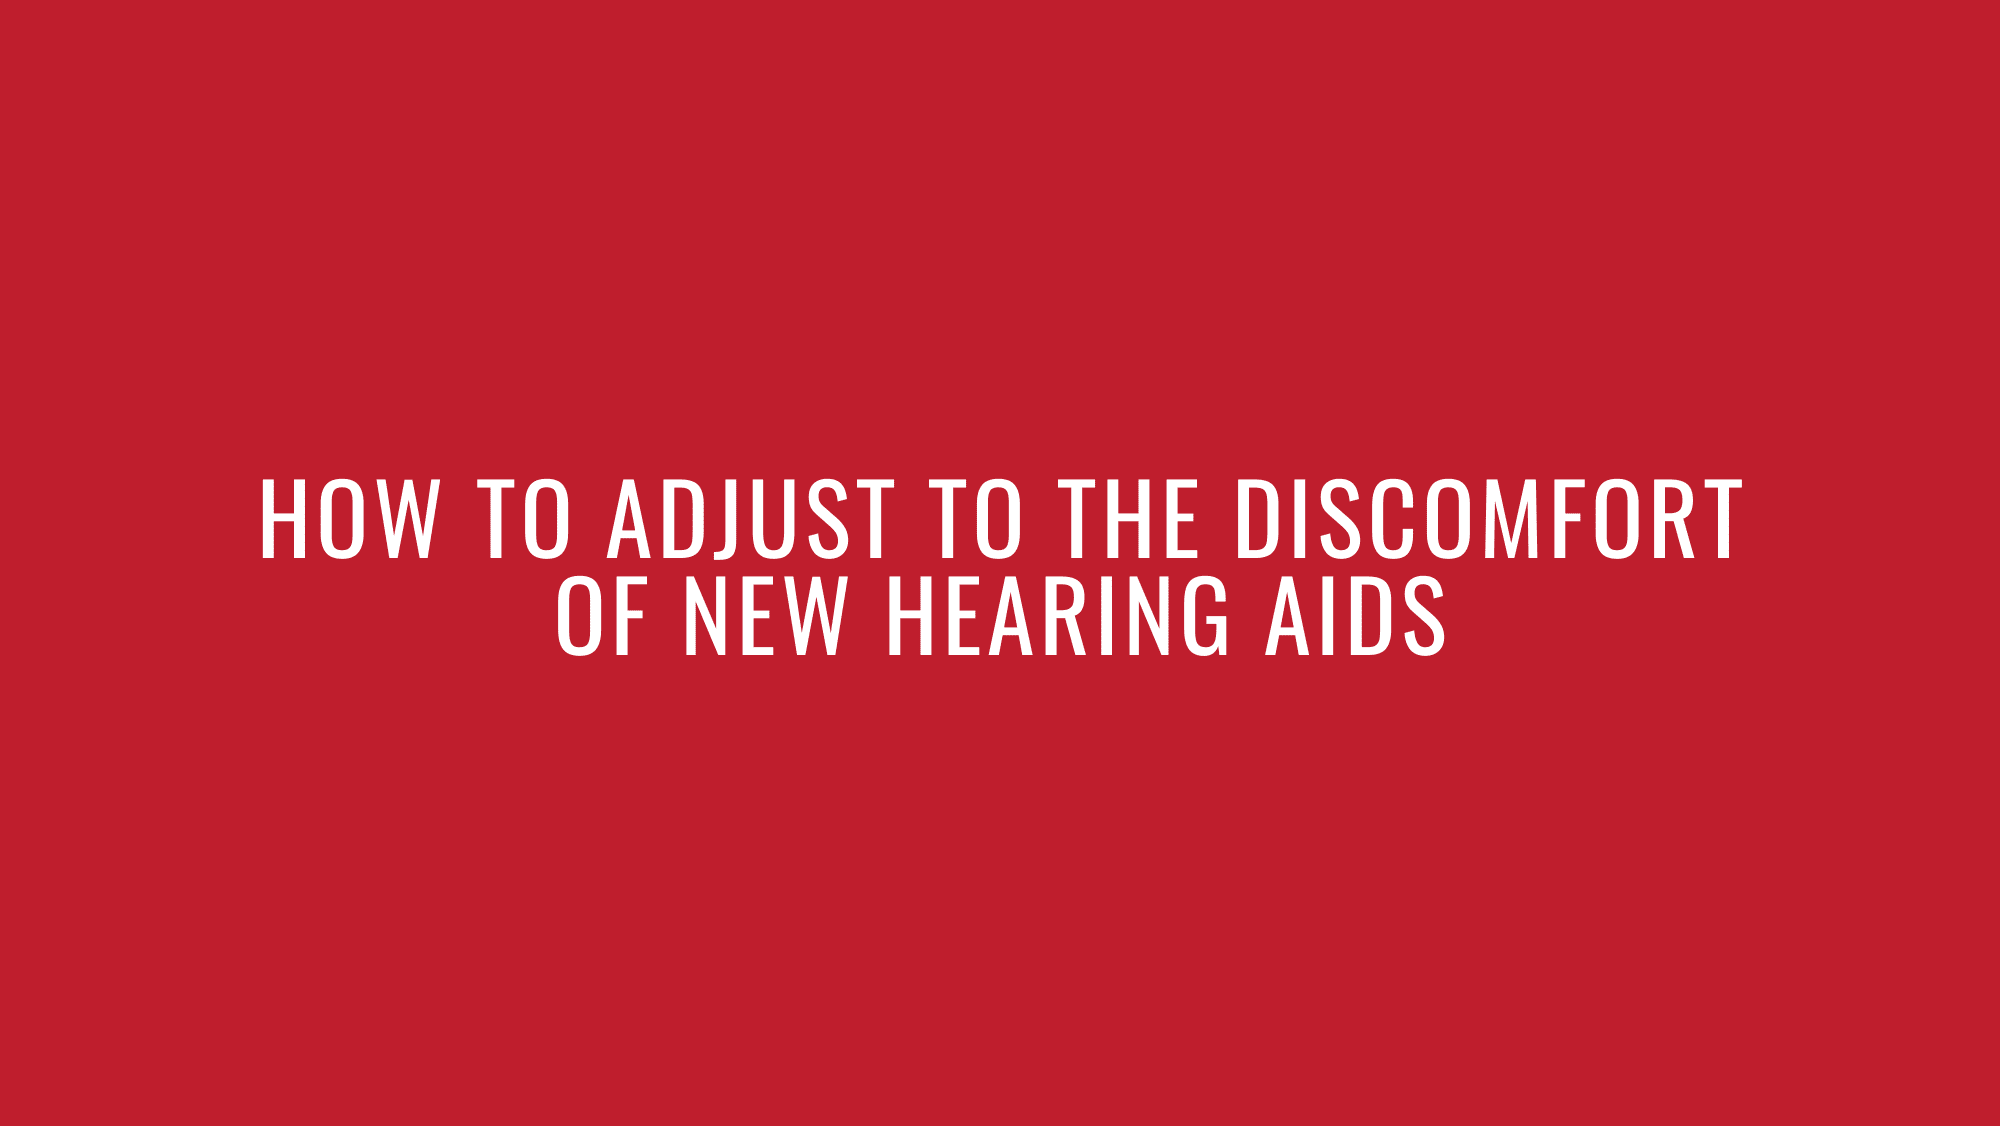 How to Adjust to the Discomfort of New Hearing Aids